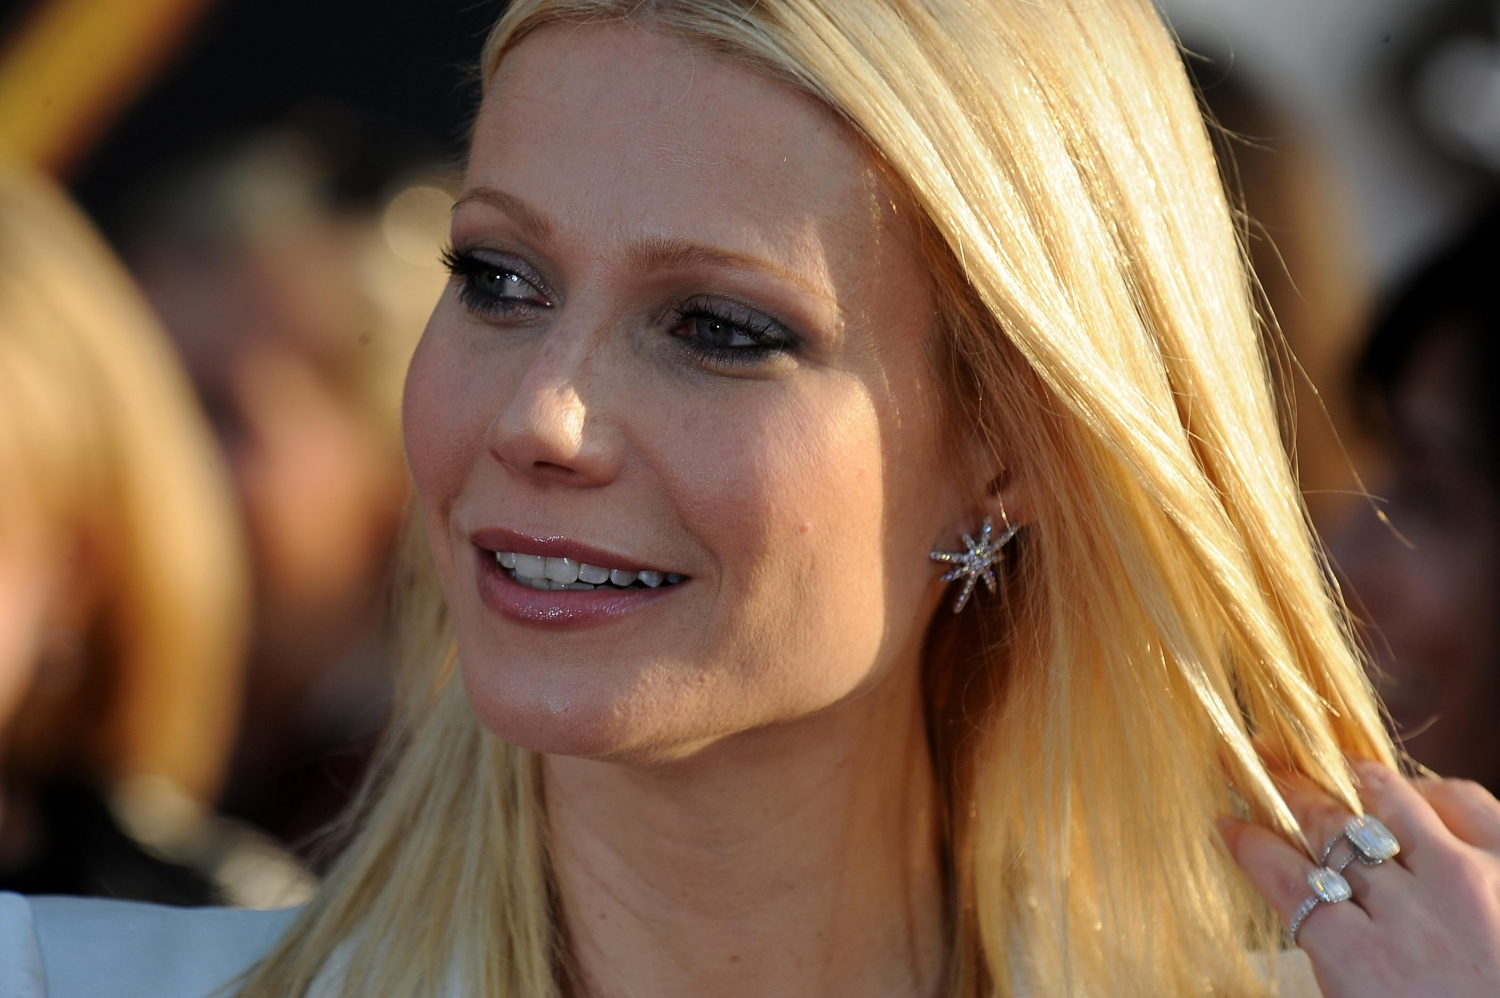 Gwyneth Paltrow and Brad Falchuk 'marry at star-studded secret wedding'